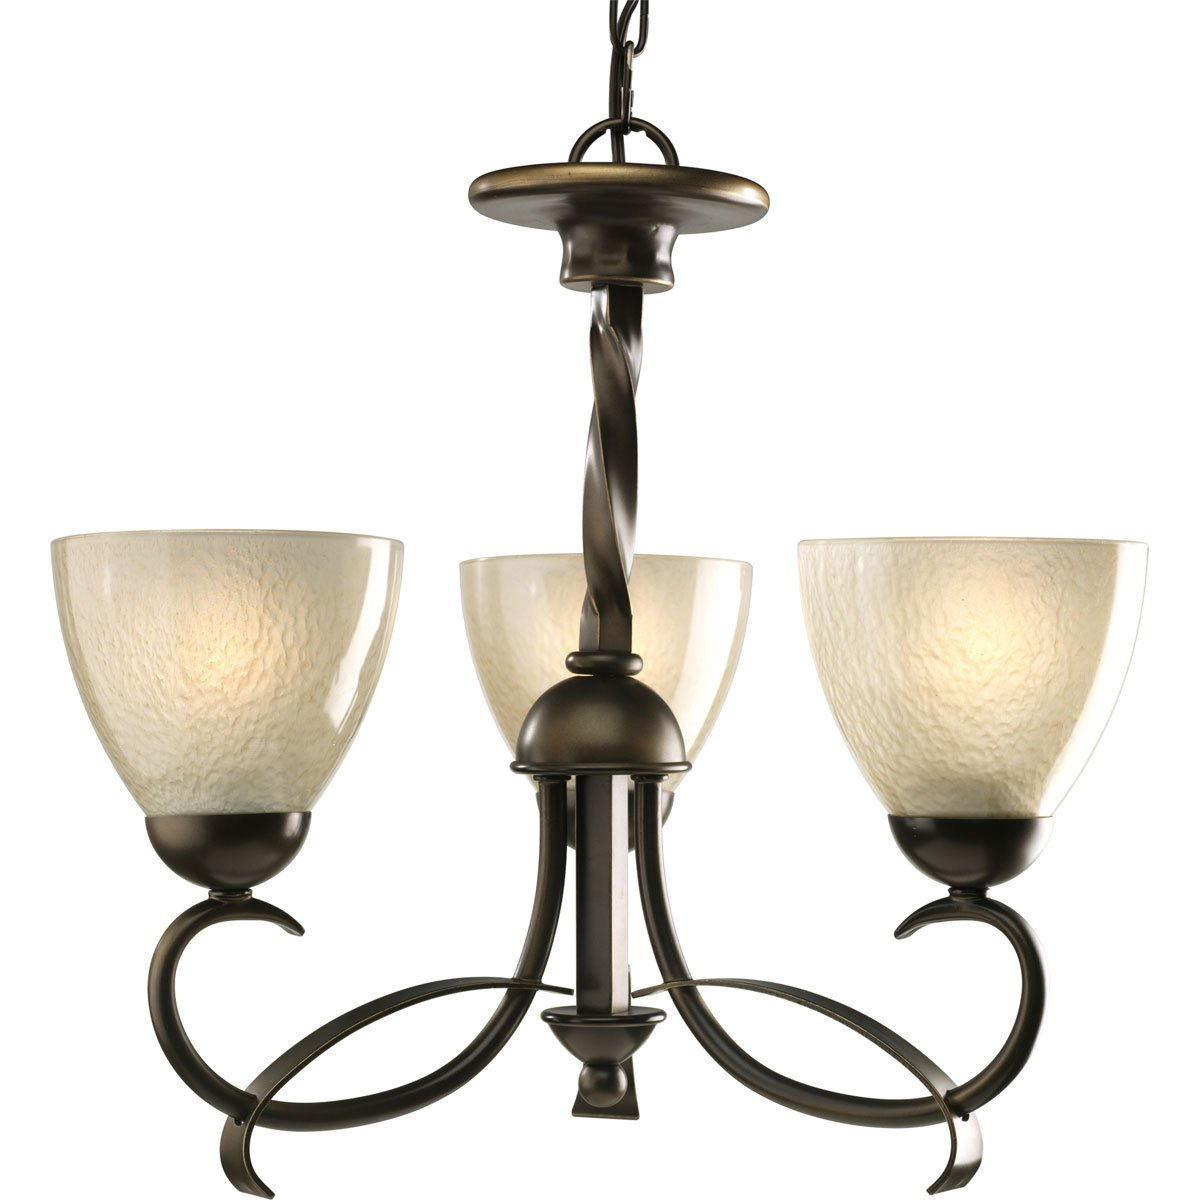 Best Progress Lighting P Light Chandelier with Forged Metal Fluid Intersecting Arms and Unique Twisted